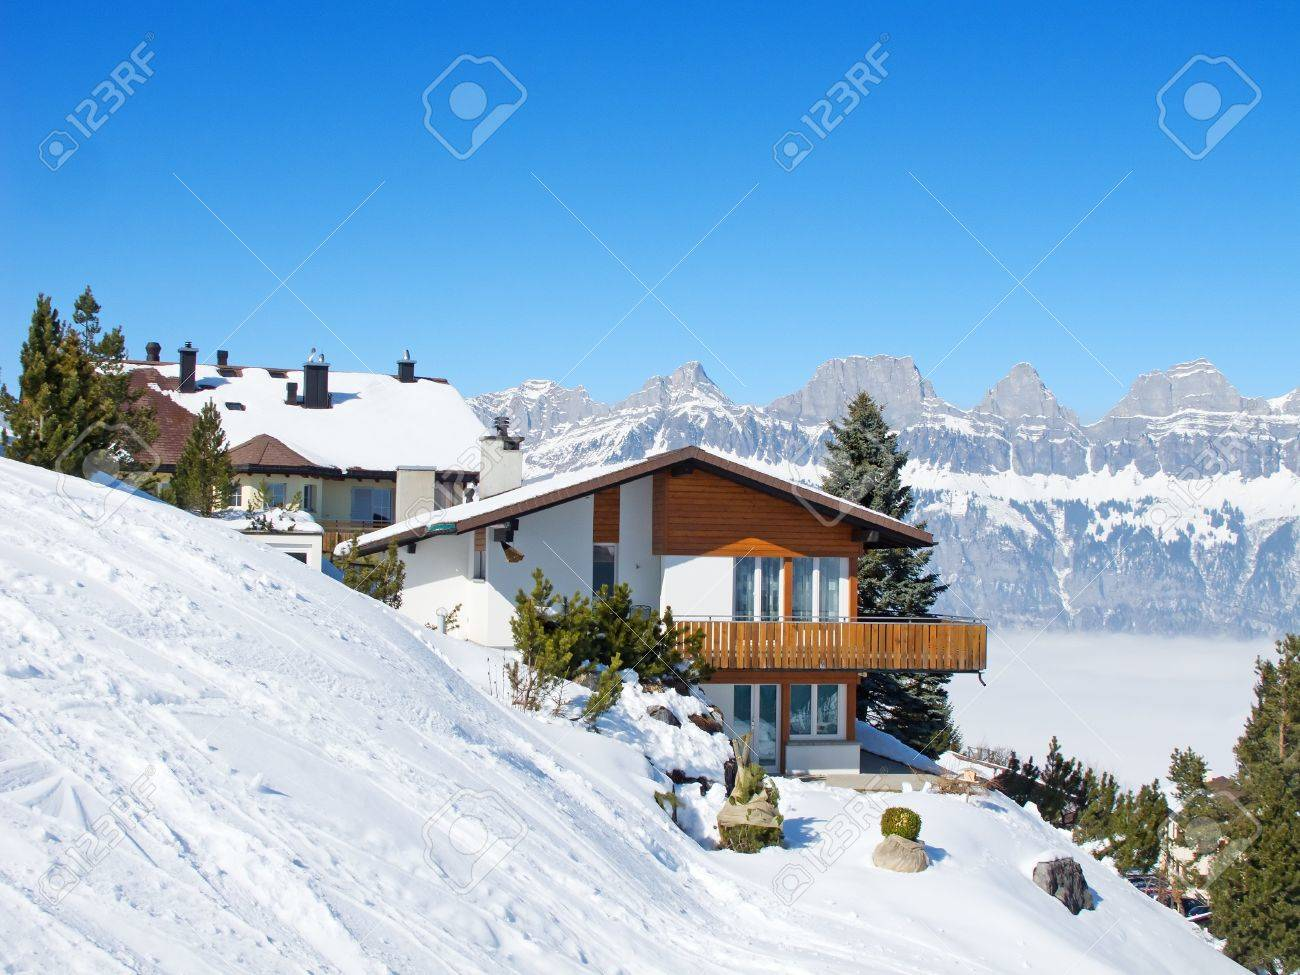 Swiss Mountain House winter holiday house in swiss alps stock photo, picture and